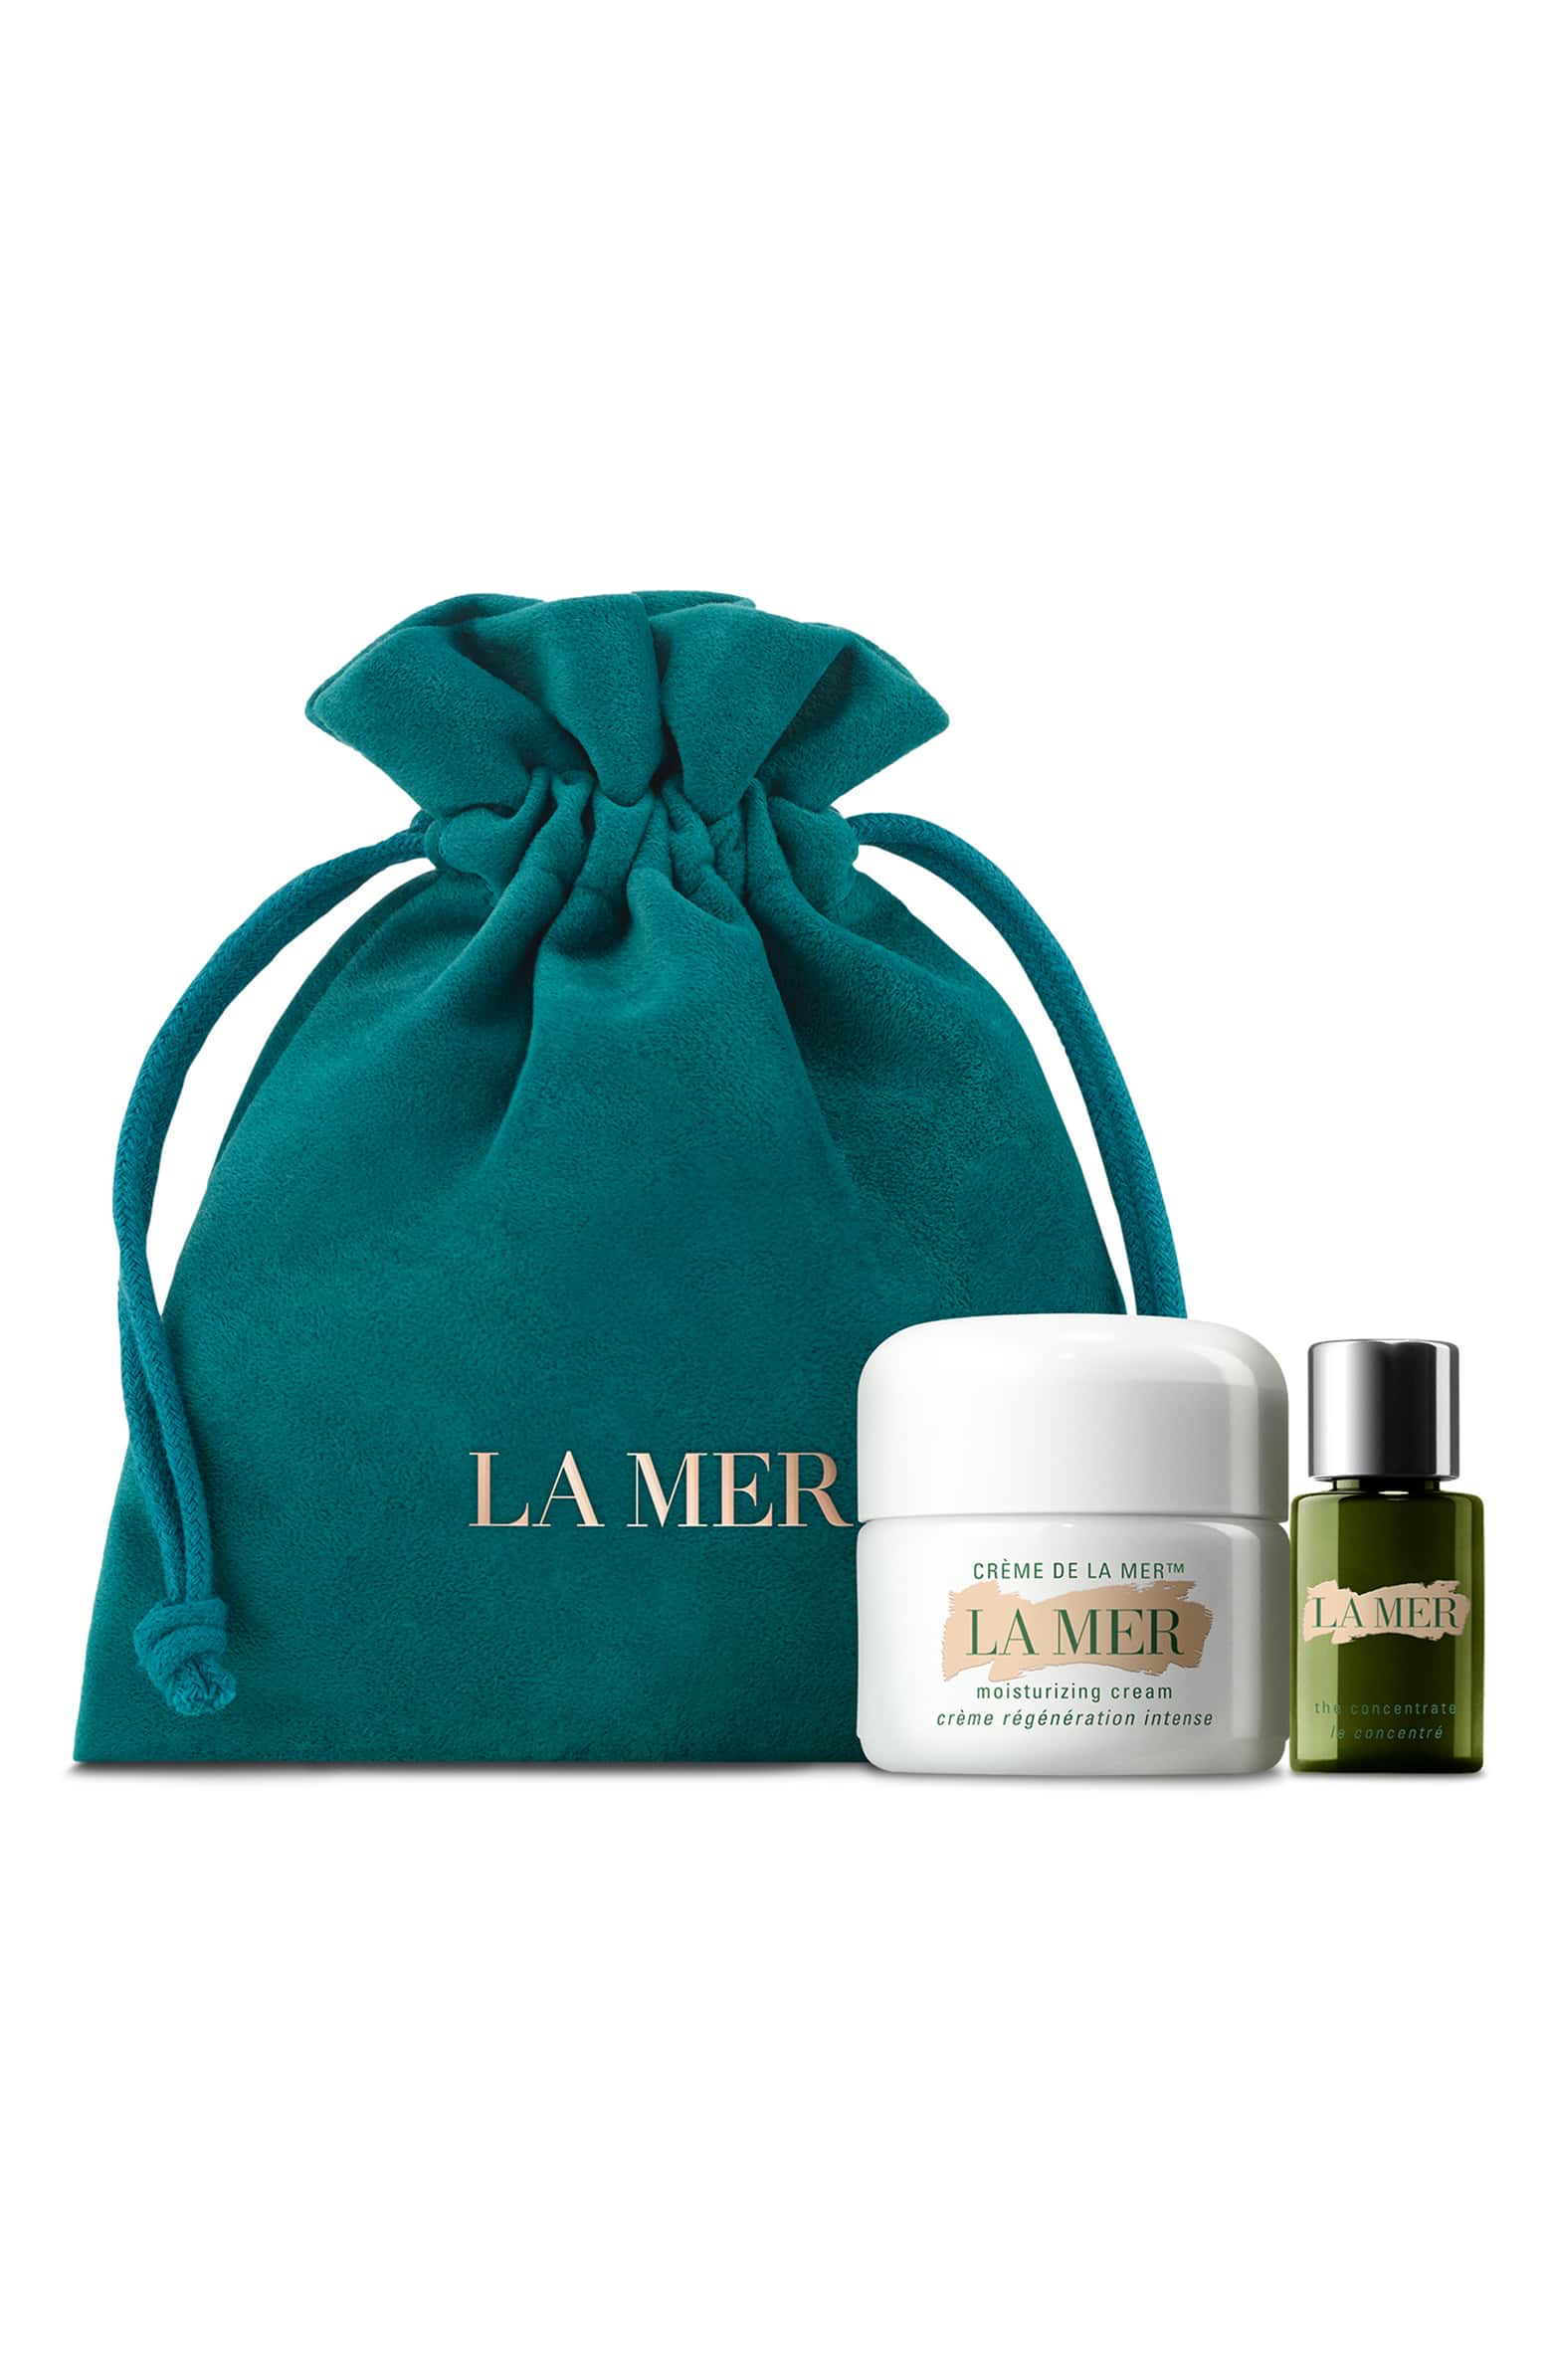 La Mer Travel Set - Cult-favorites from La Mer Skincare